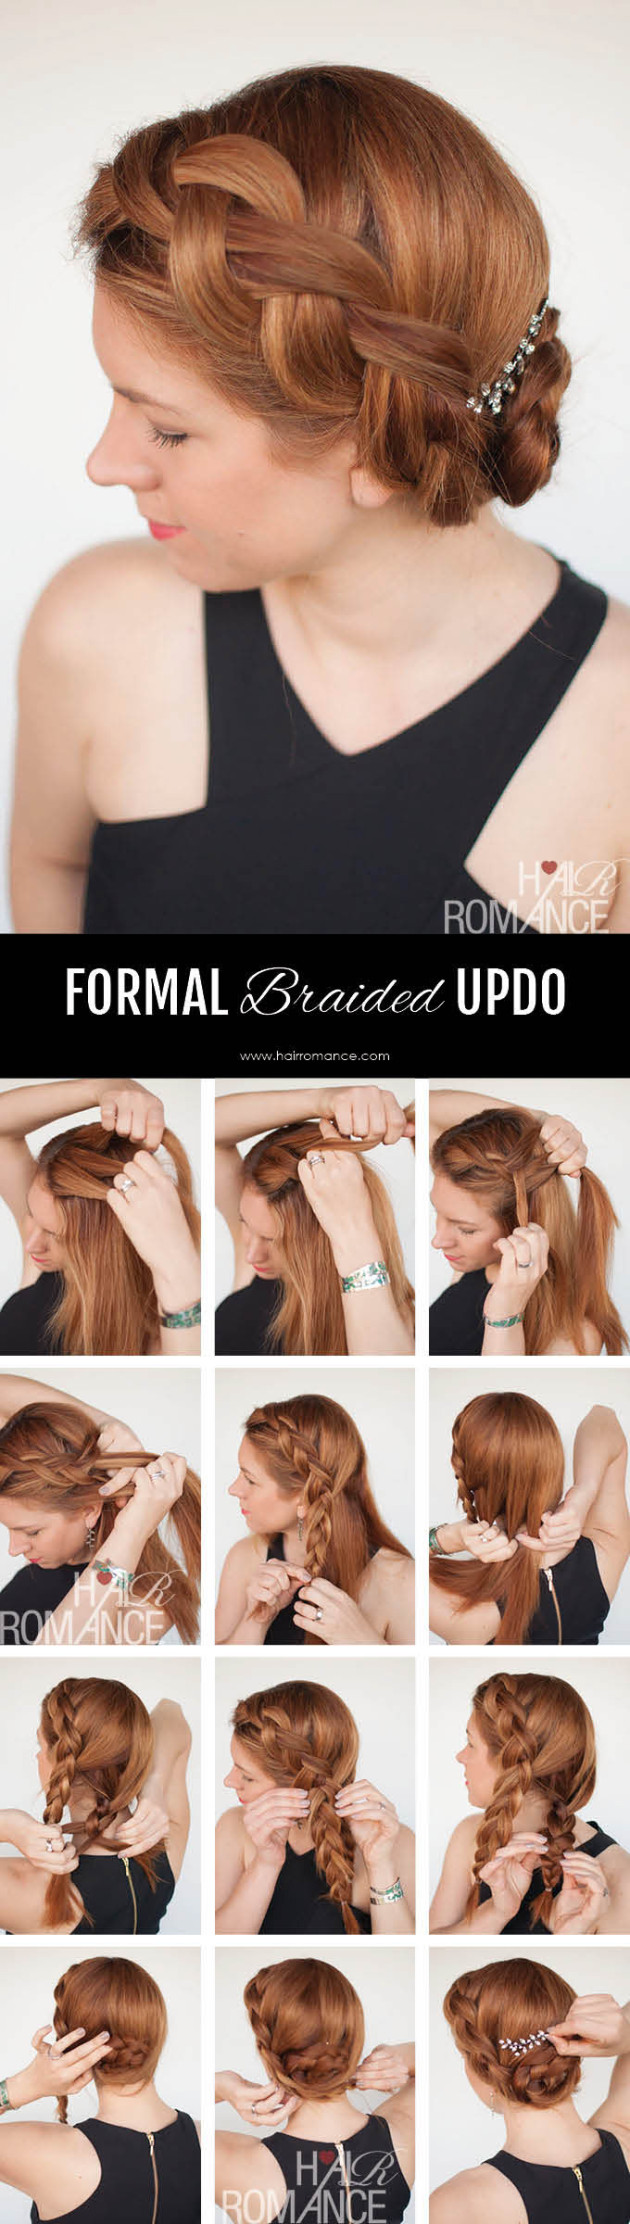 Formal braided updo braided hairstyles you should try to do